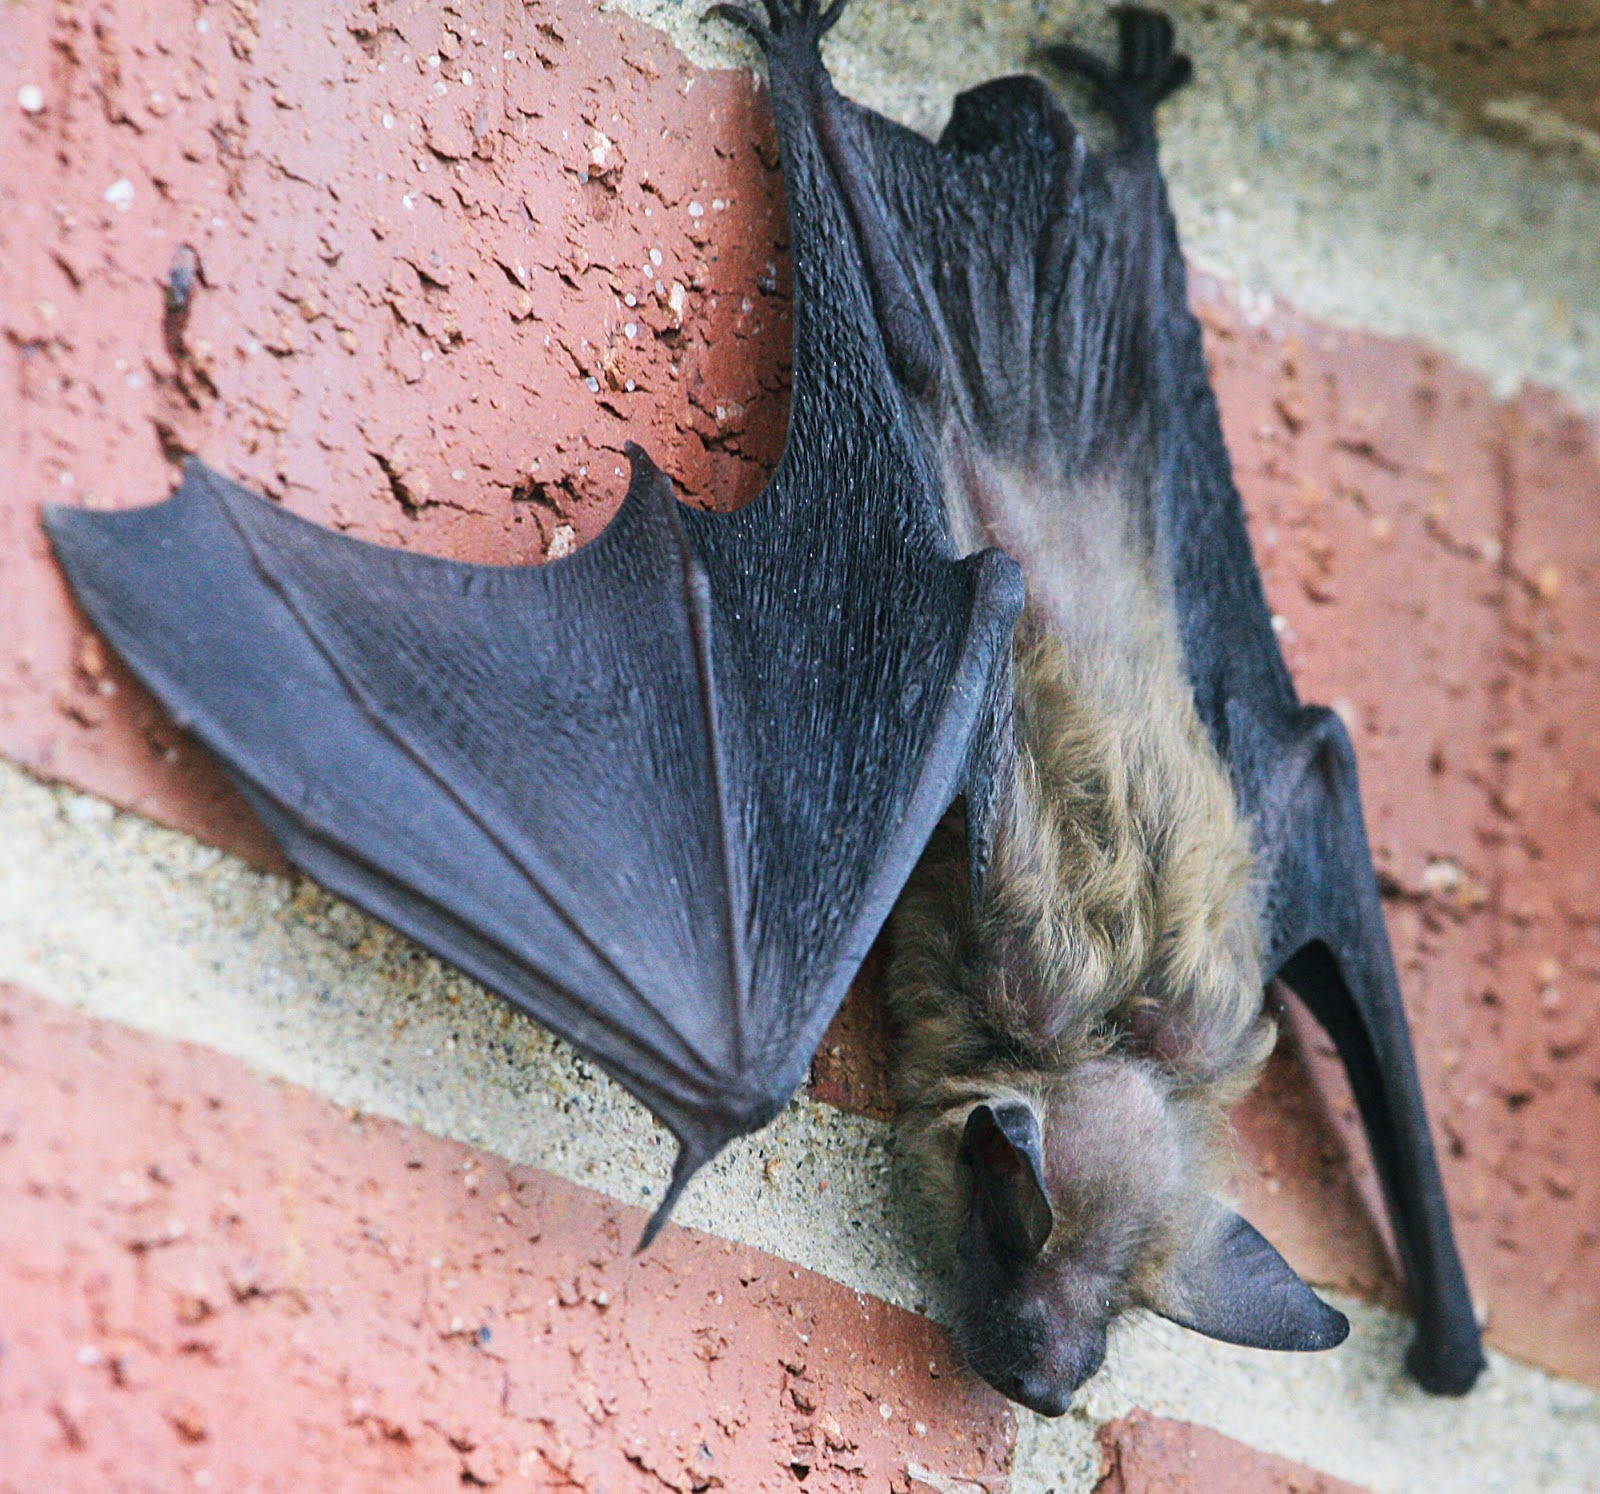 We Had A Delightful Little Visitor At The Apartment Last Week Brown Bat